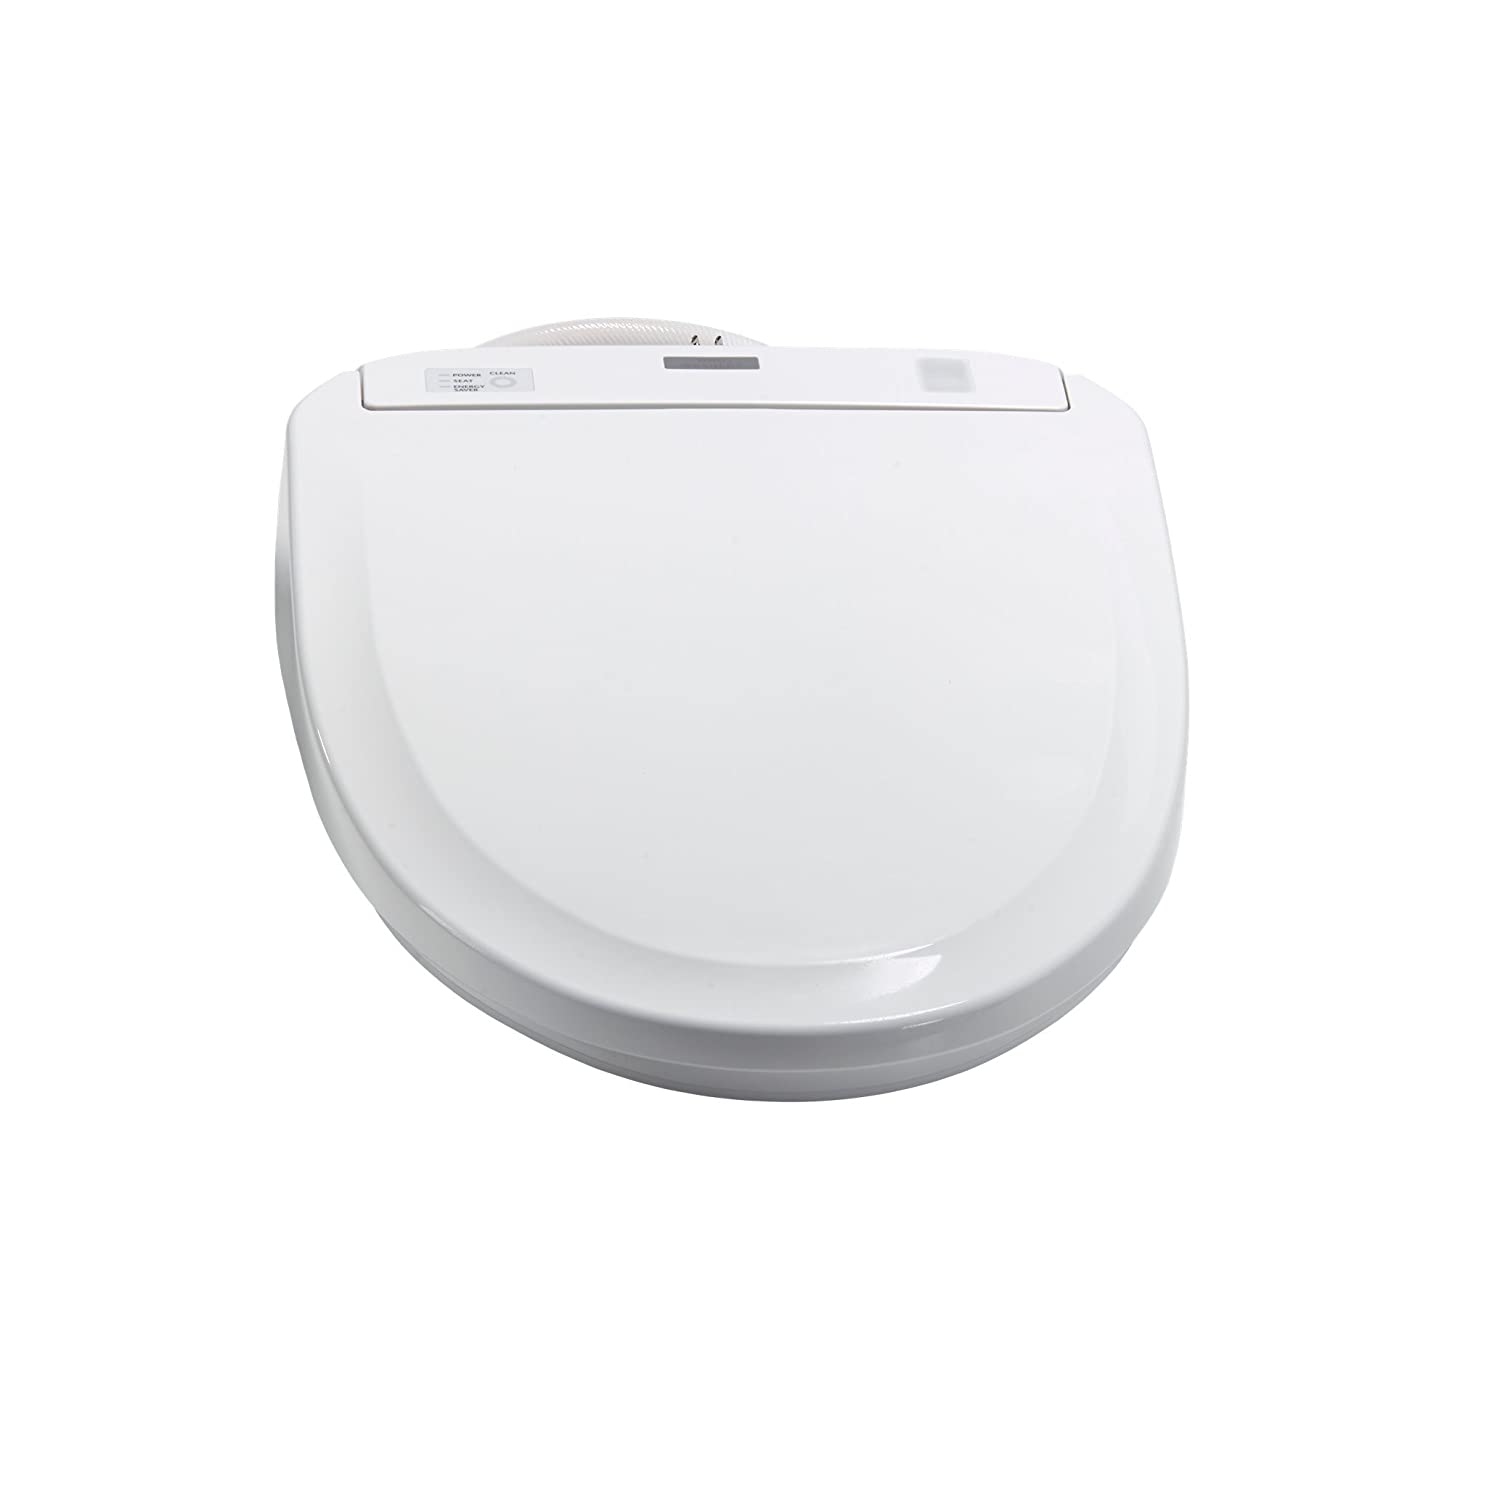 Toto SW584#01 Washlet S350e Toilet Seat-Elongated with Ewater Plus ...